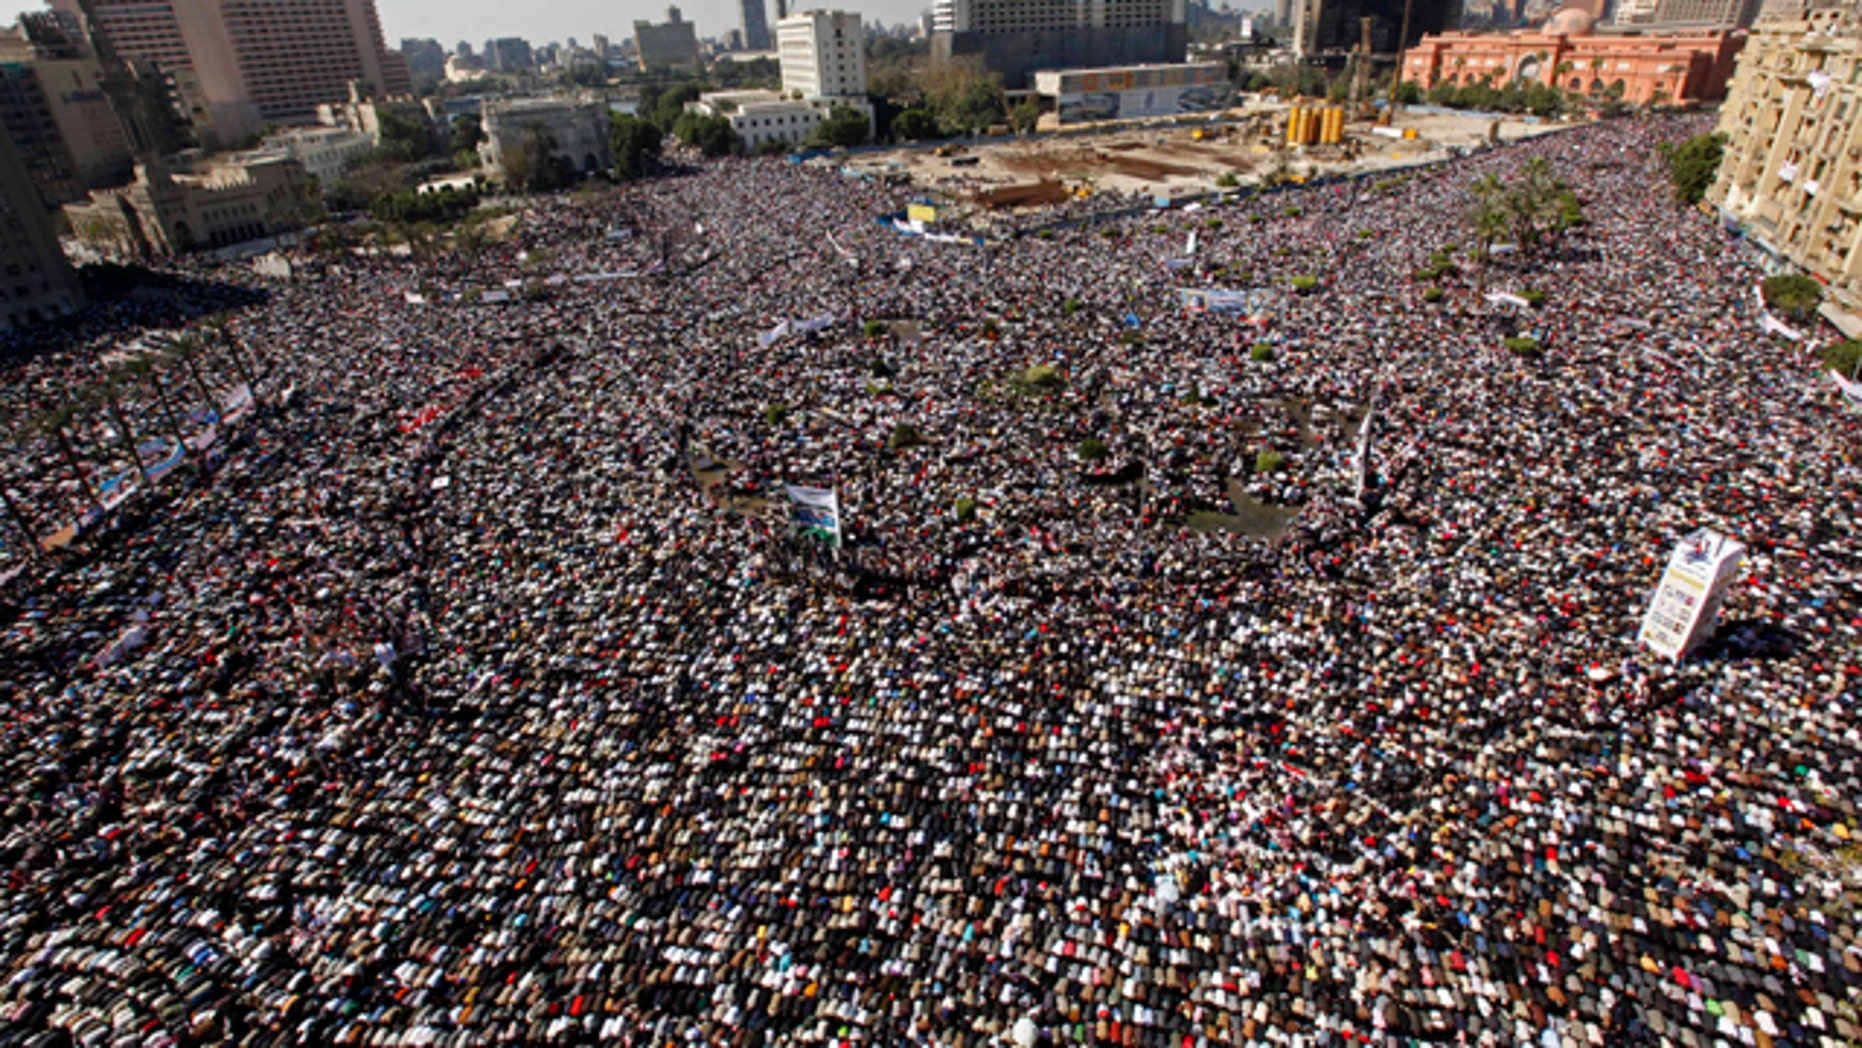 Feb. 18: Thousands pray during Friday prayers at Tahrir square in Cairo, Egypt.